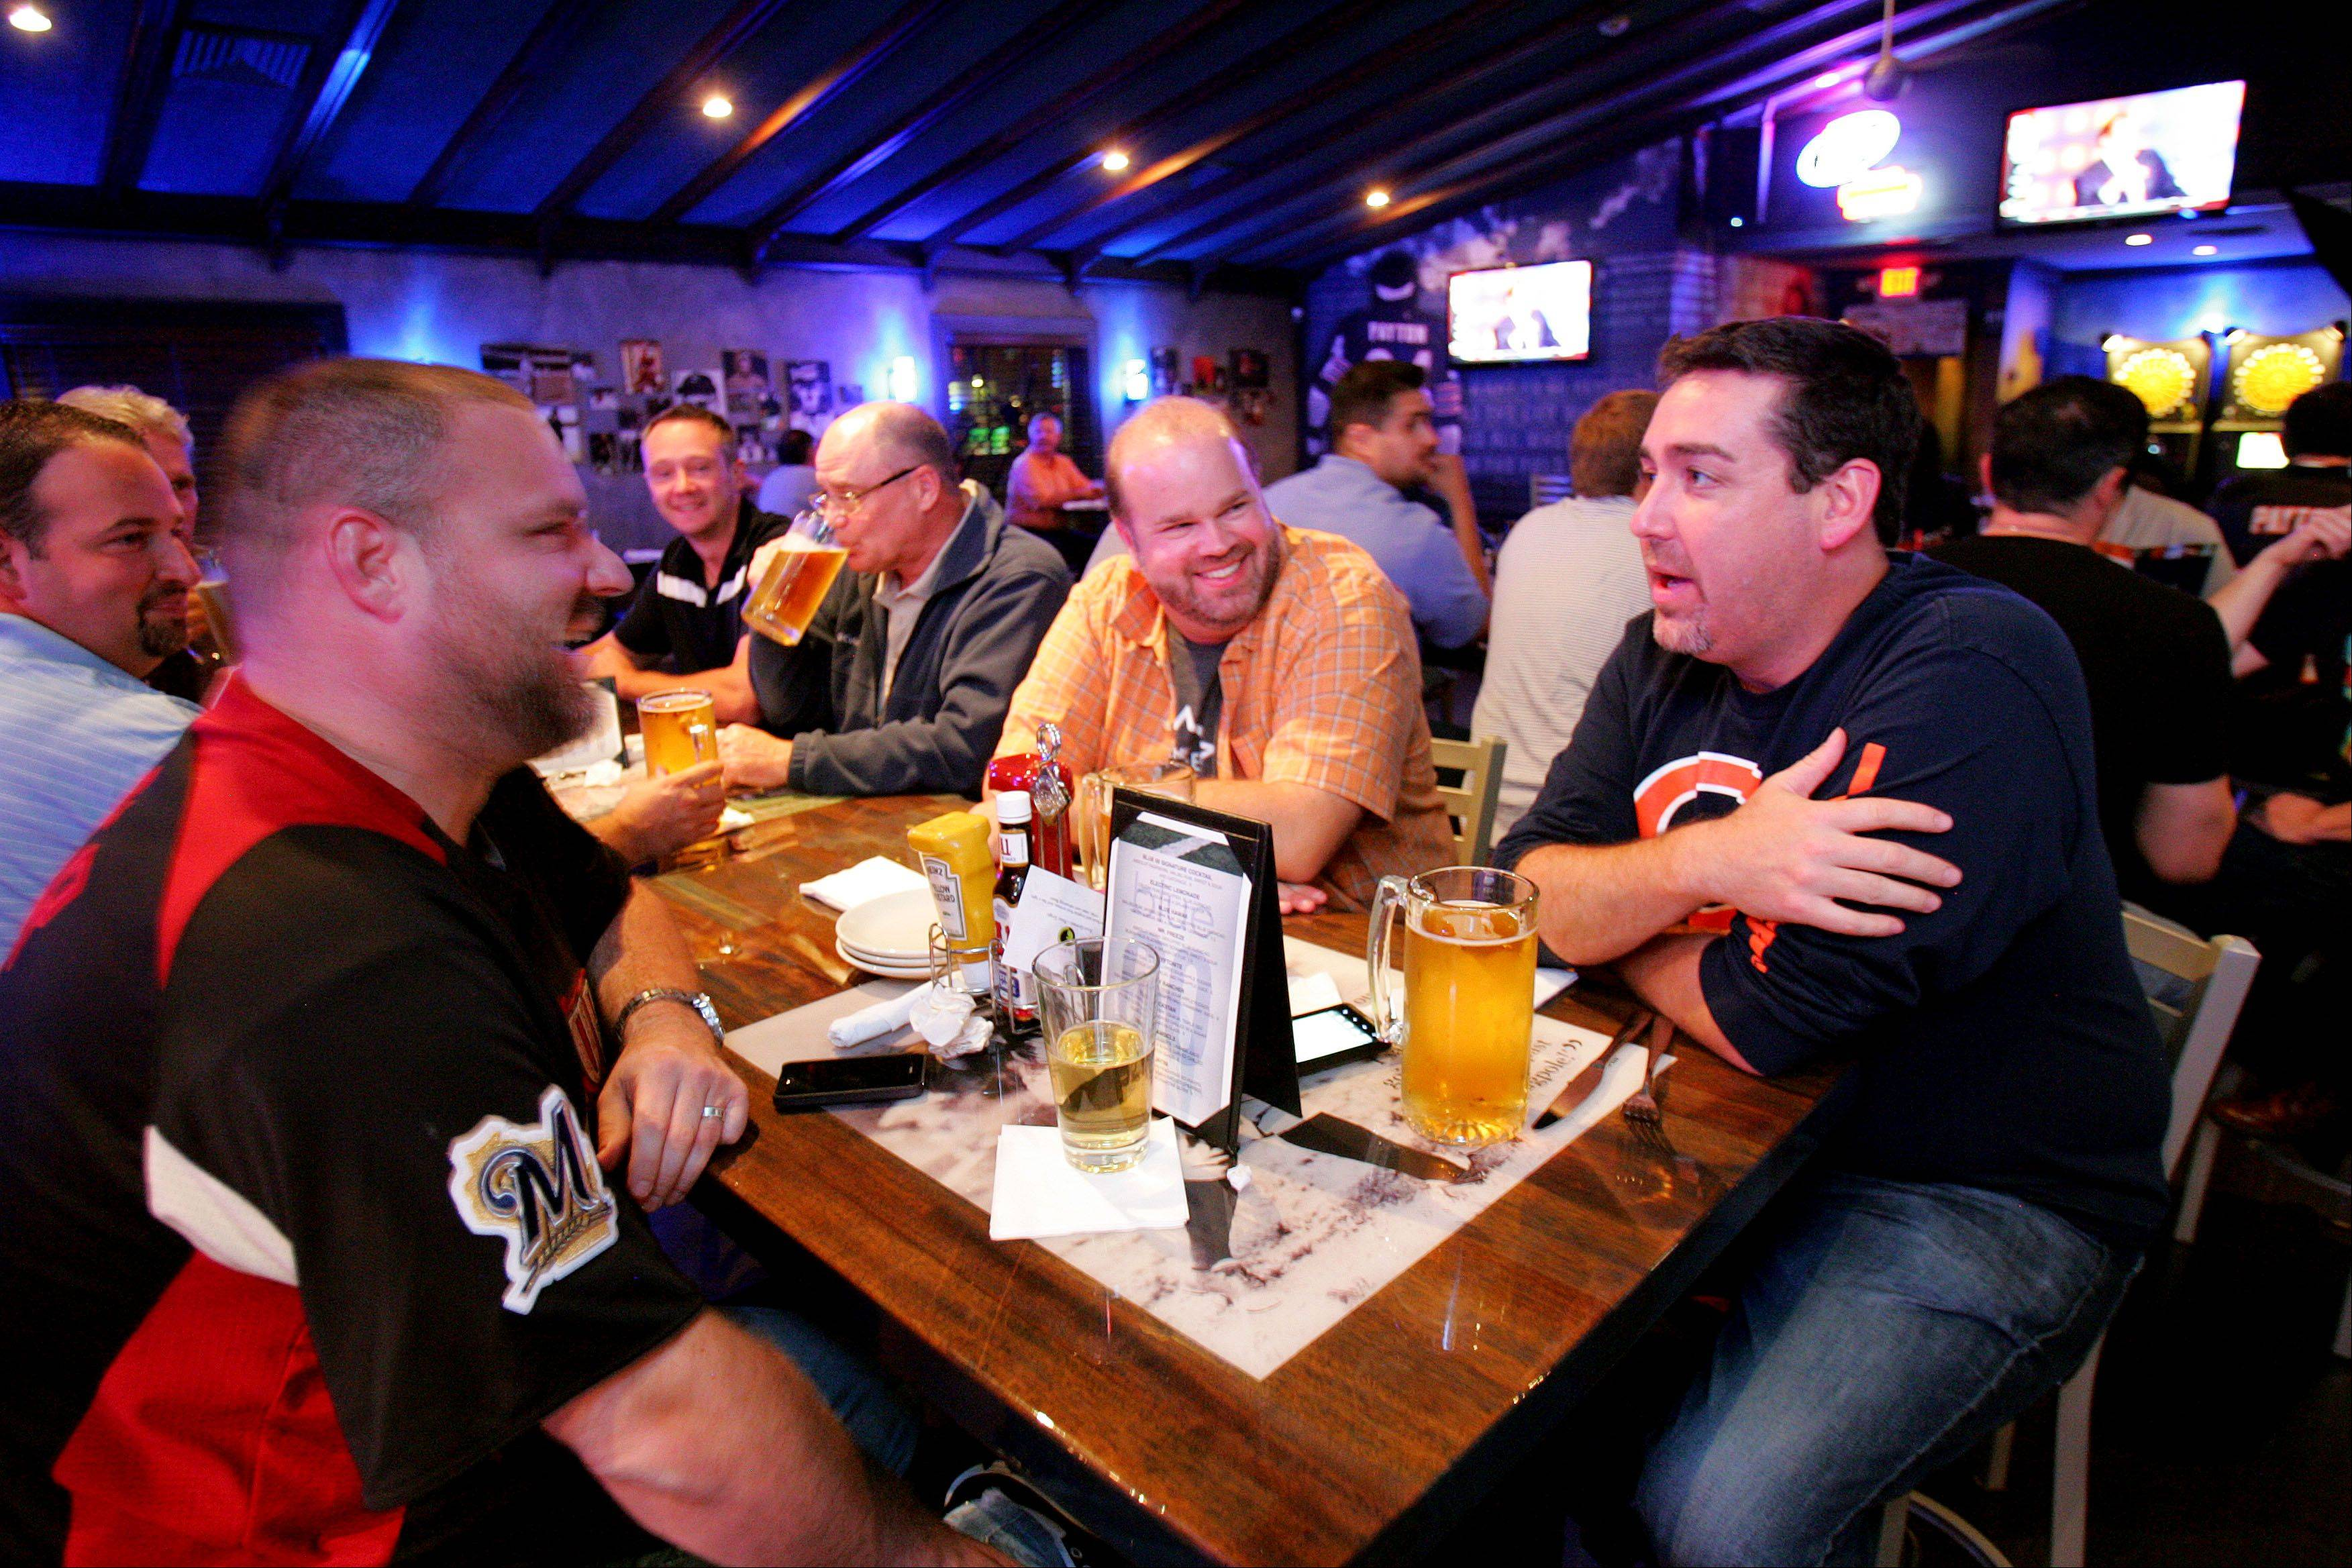 Dan Prass, left, Jeff Kruger and Evan Rullman of Vernon Hills hang out at Blue 60 sports bar in Mundelein.